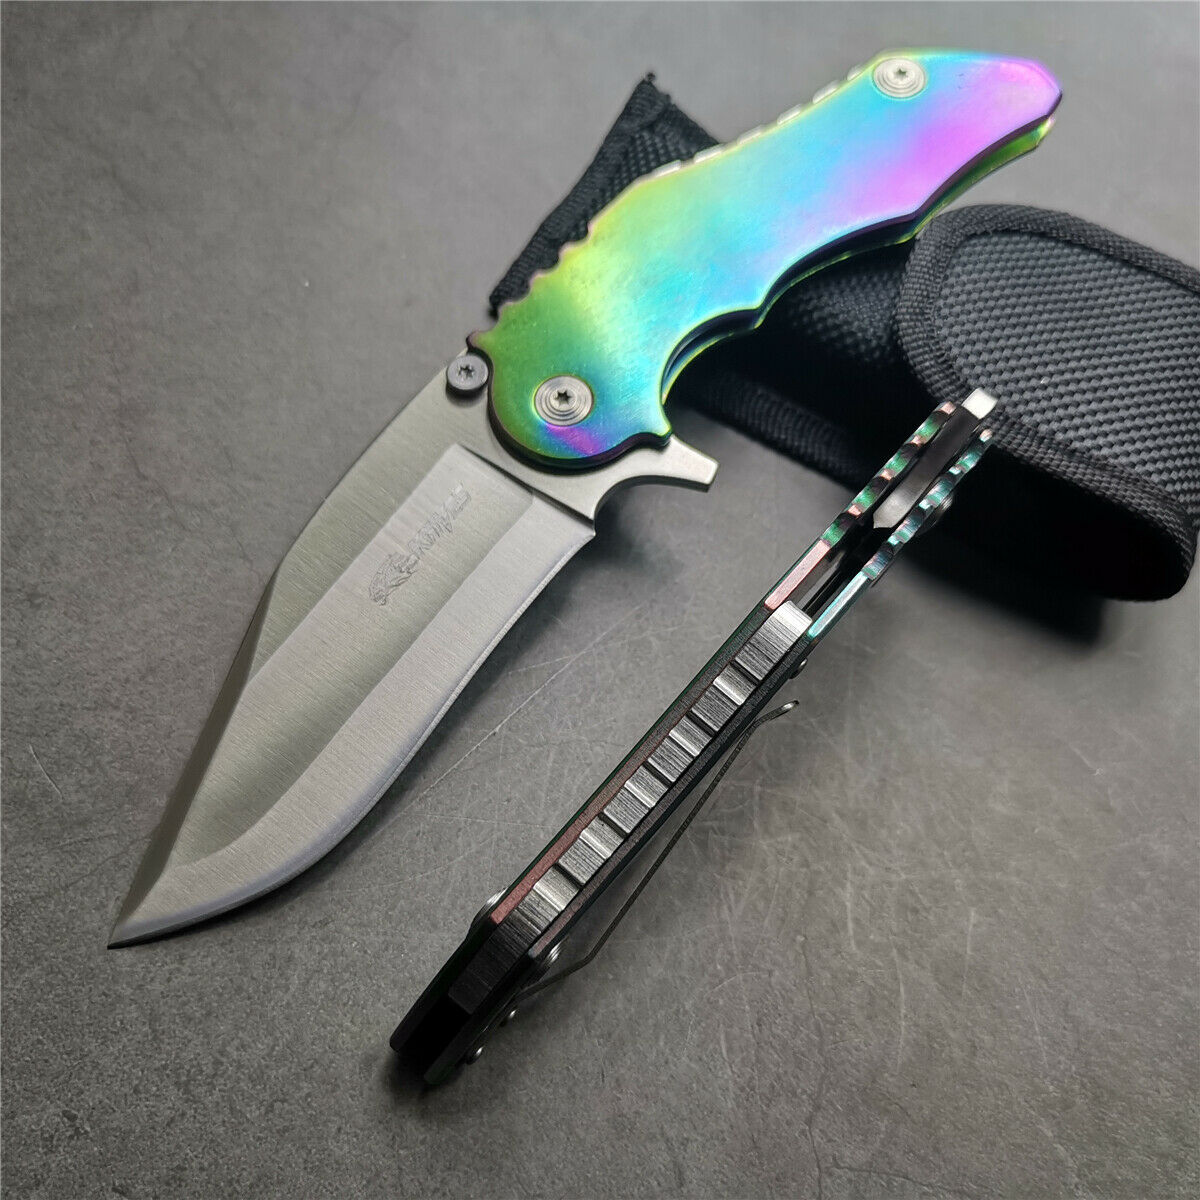 SR Knives 595A Big Rainbow Titanium Handle Beast Pocket Knife Manual FrameLock Flipper